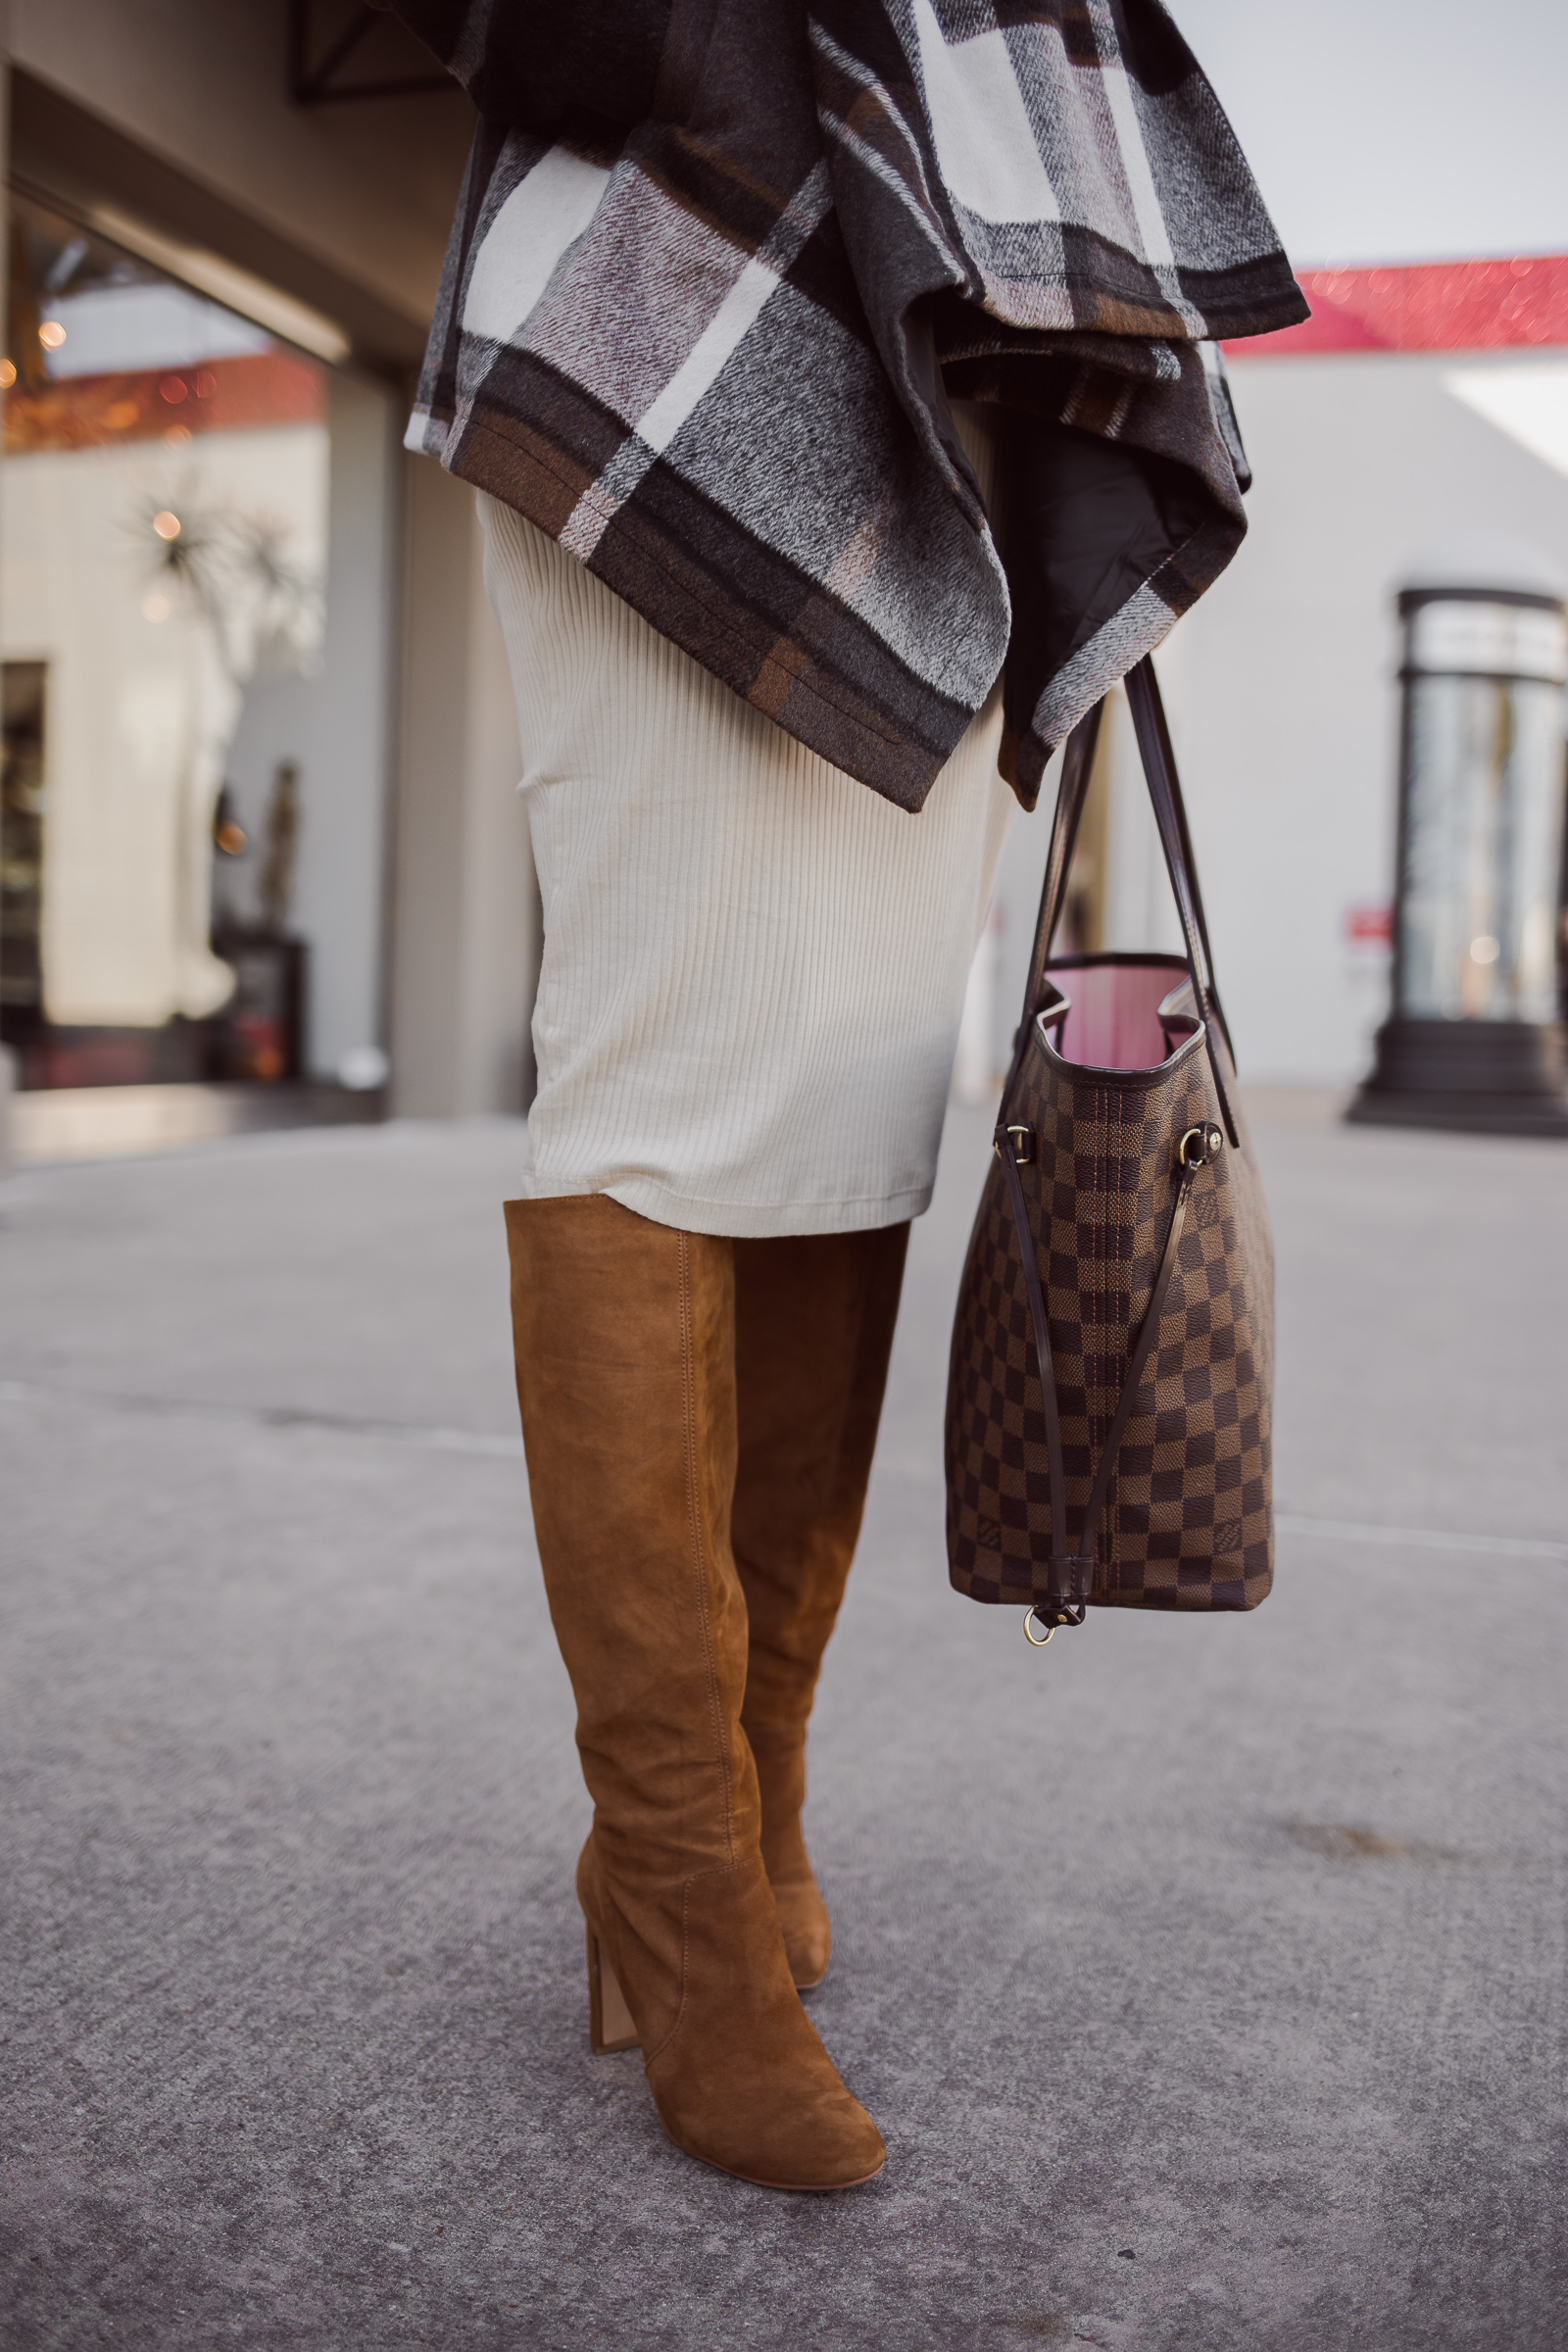 Houston fashion blogger Uptown with Elly Brown wears a Dolce Vita knee high boots for the winter